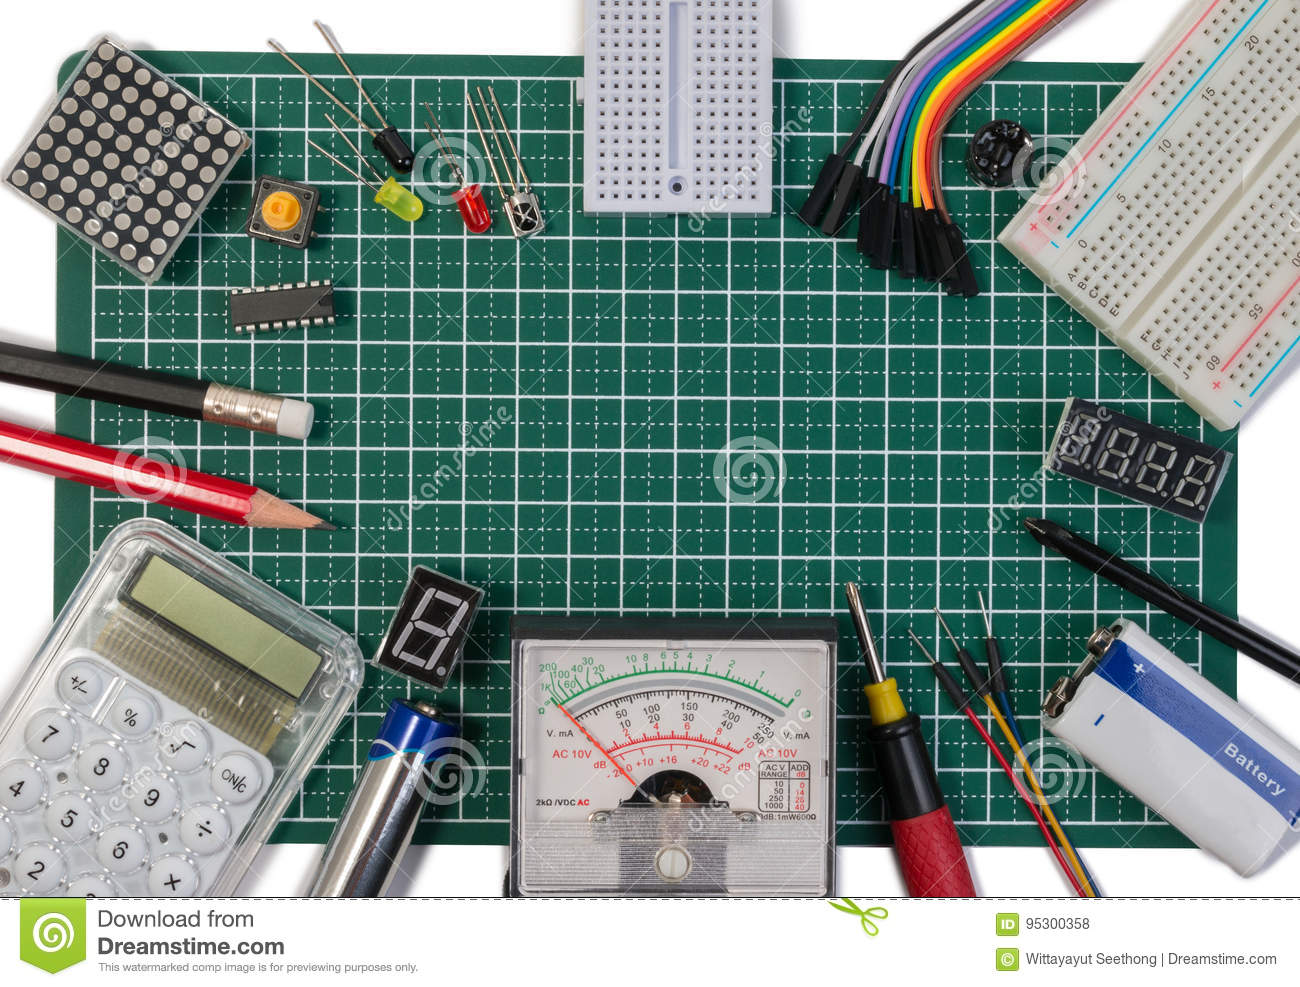 hight resolution of diy electrical maker tools components on green cutting mat board